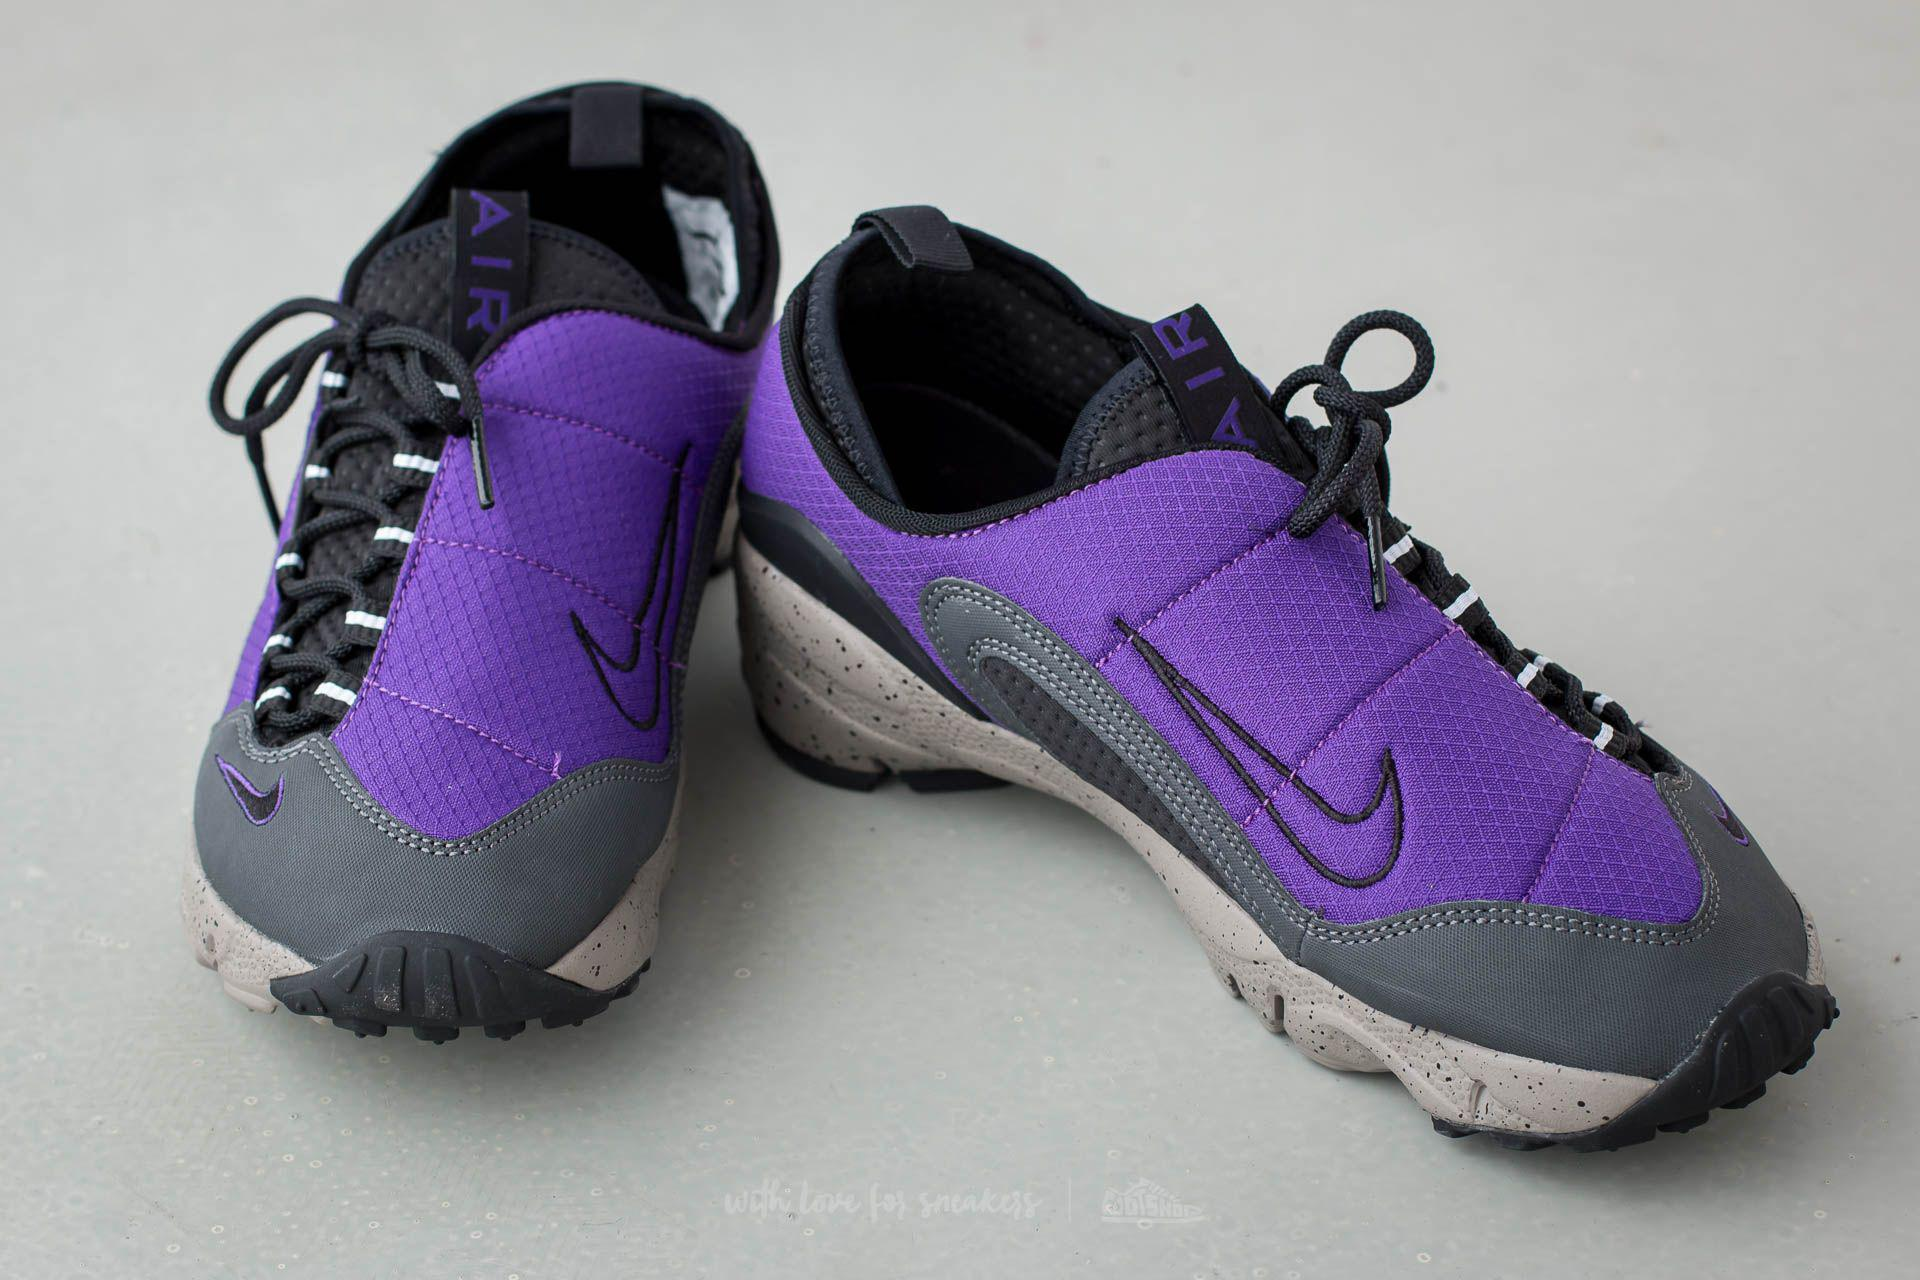 info for 1fa25 17477 Lyst - Nike Air Footscape Nm Court Purple Black-light Taupe